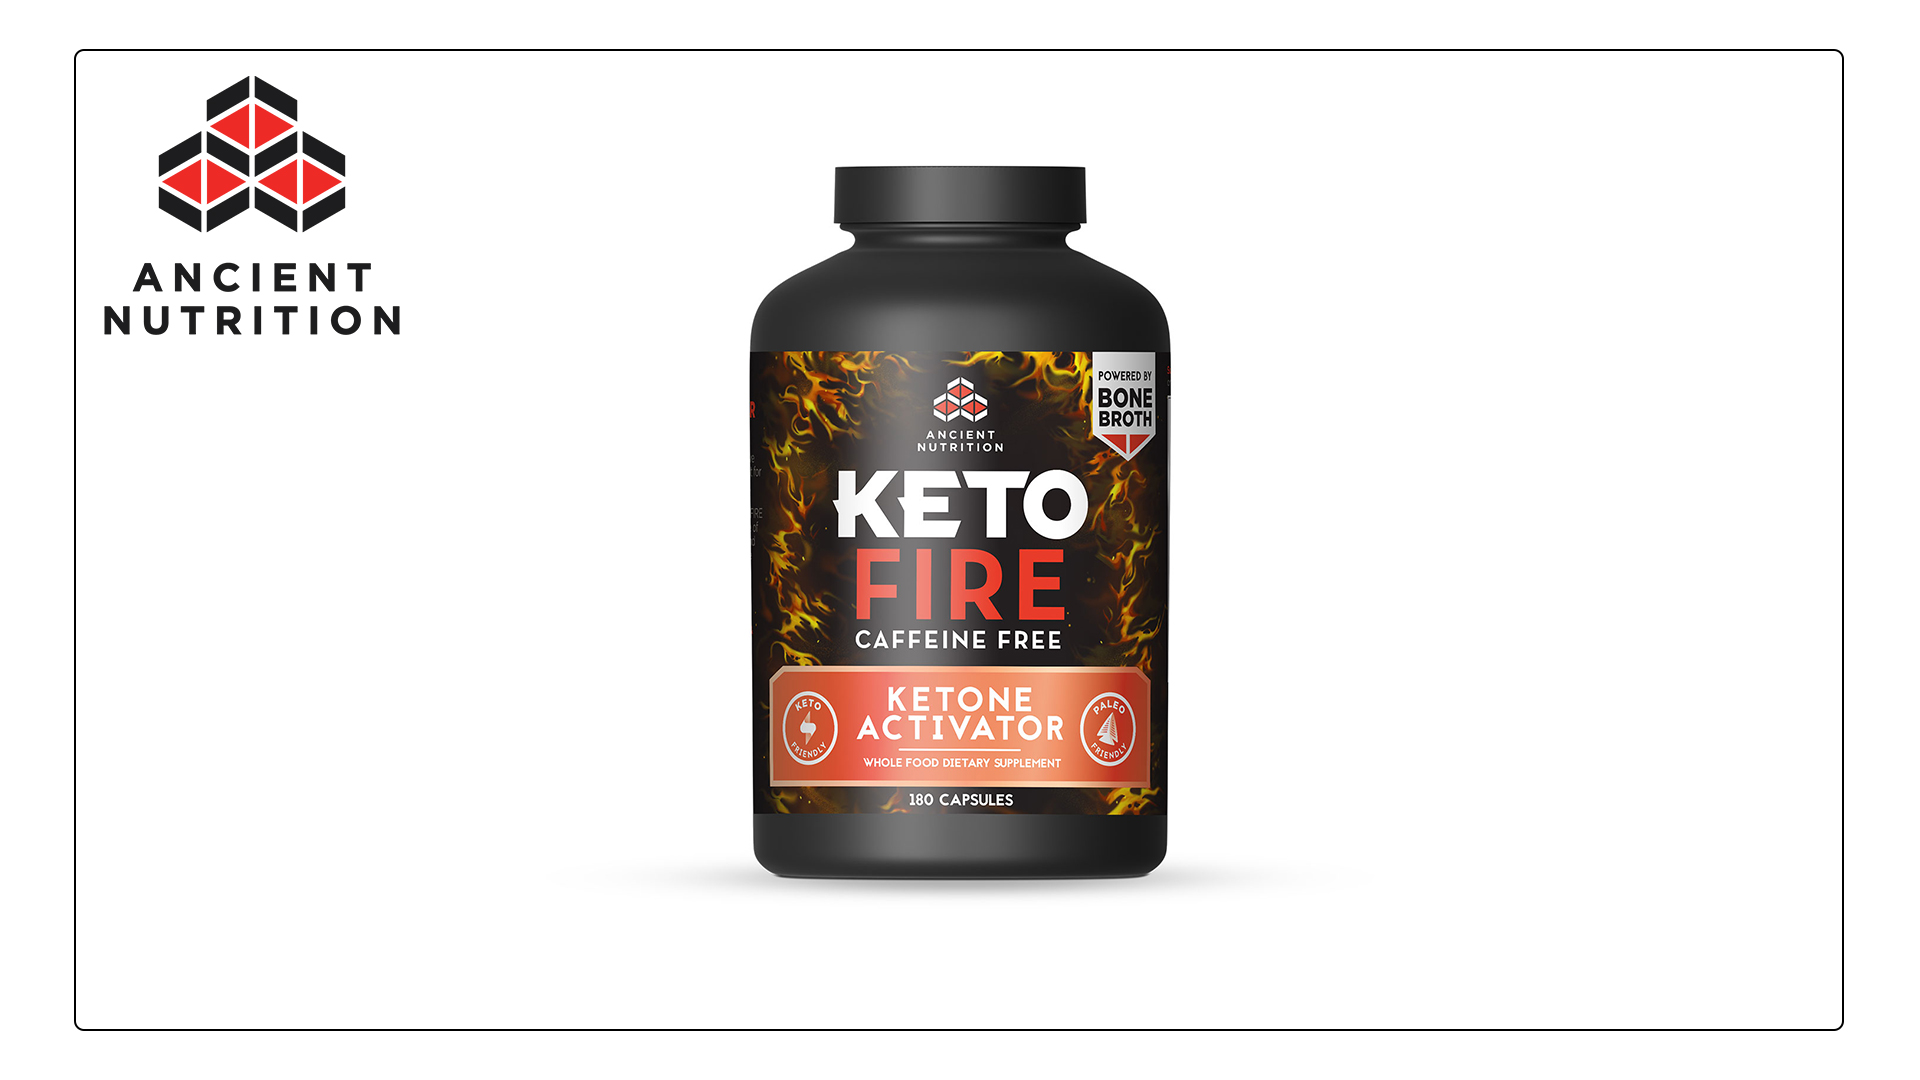 Ancient Nutrition KetoFIRE Caffeine Free Capsules, 180 Count - Keto Supplement with BHB Salts as Exogenous Ketones and Electrolytes